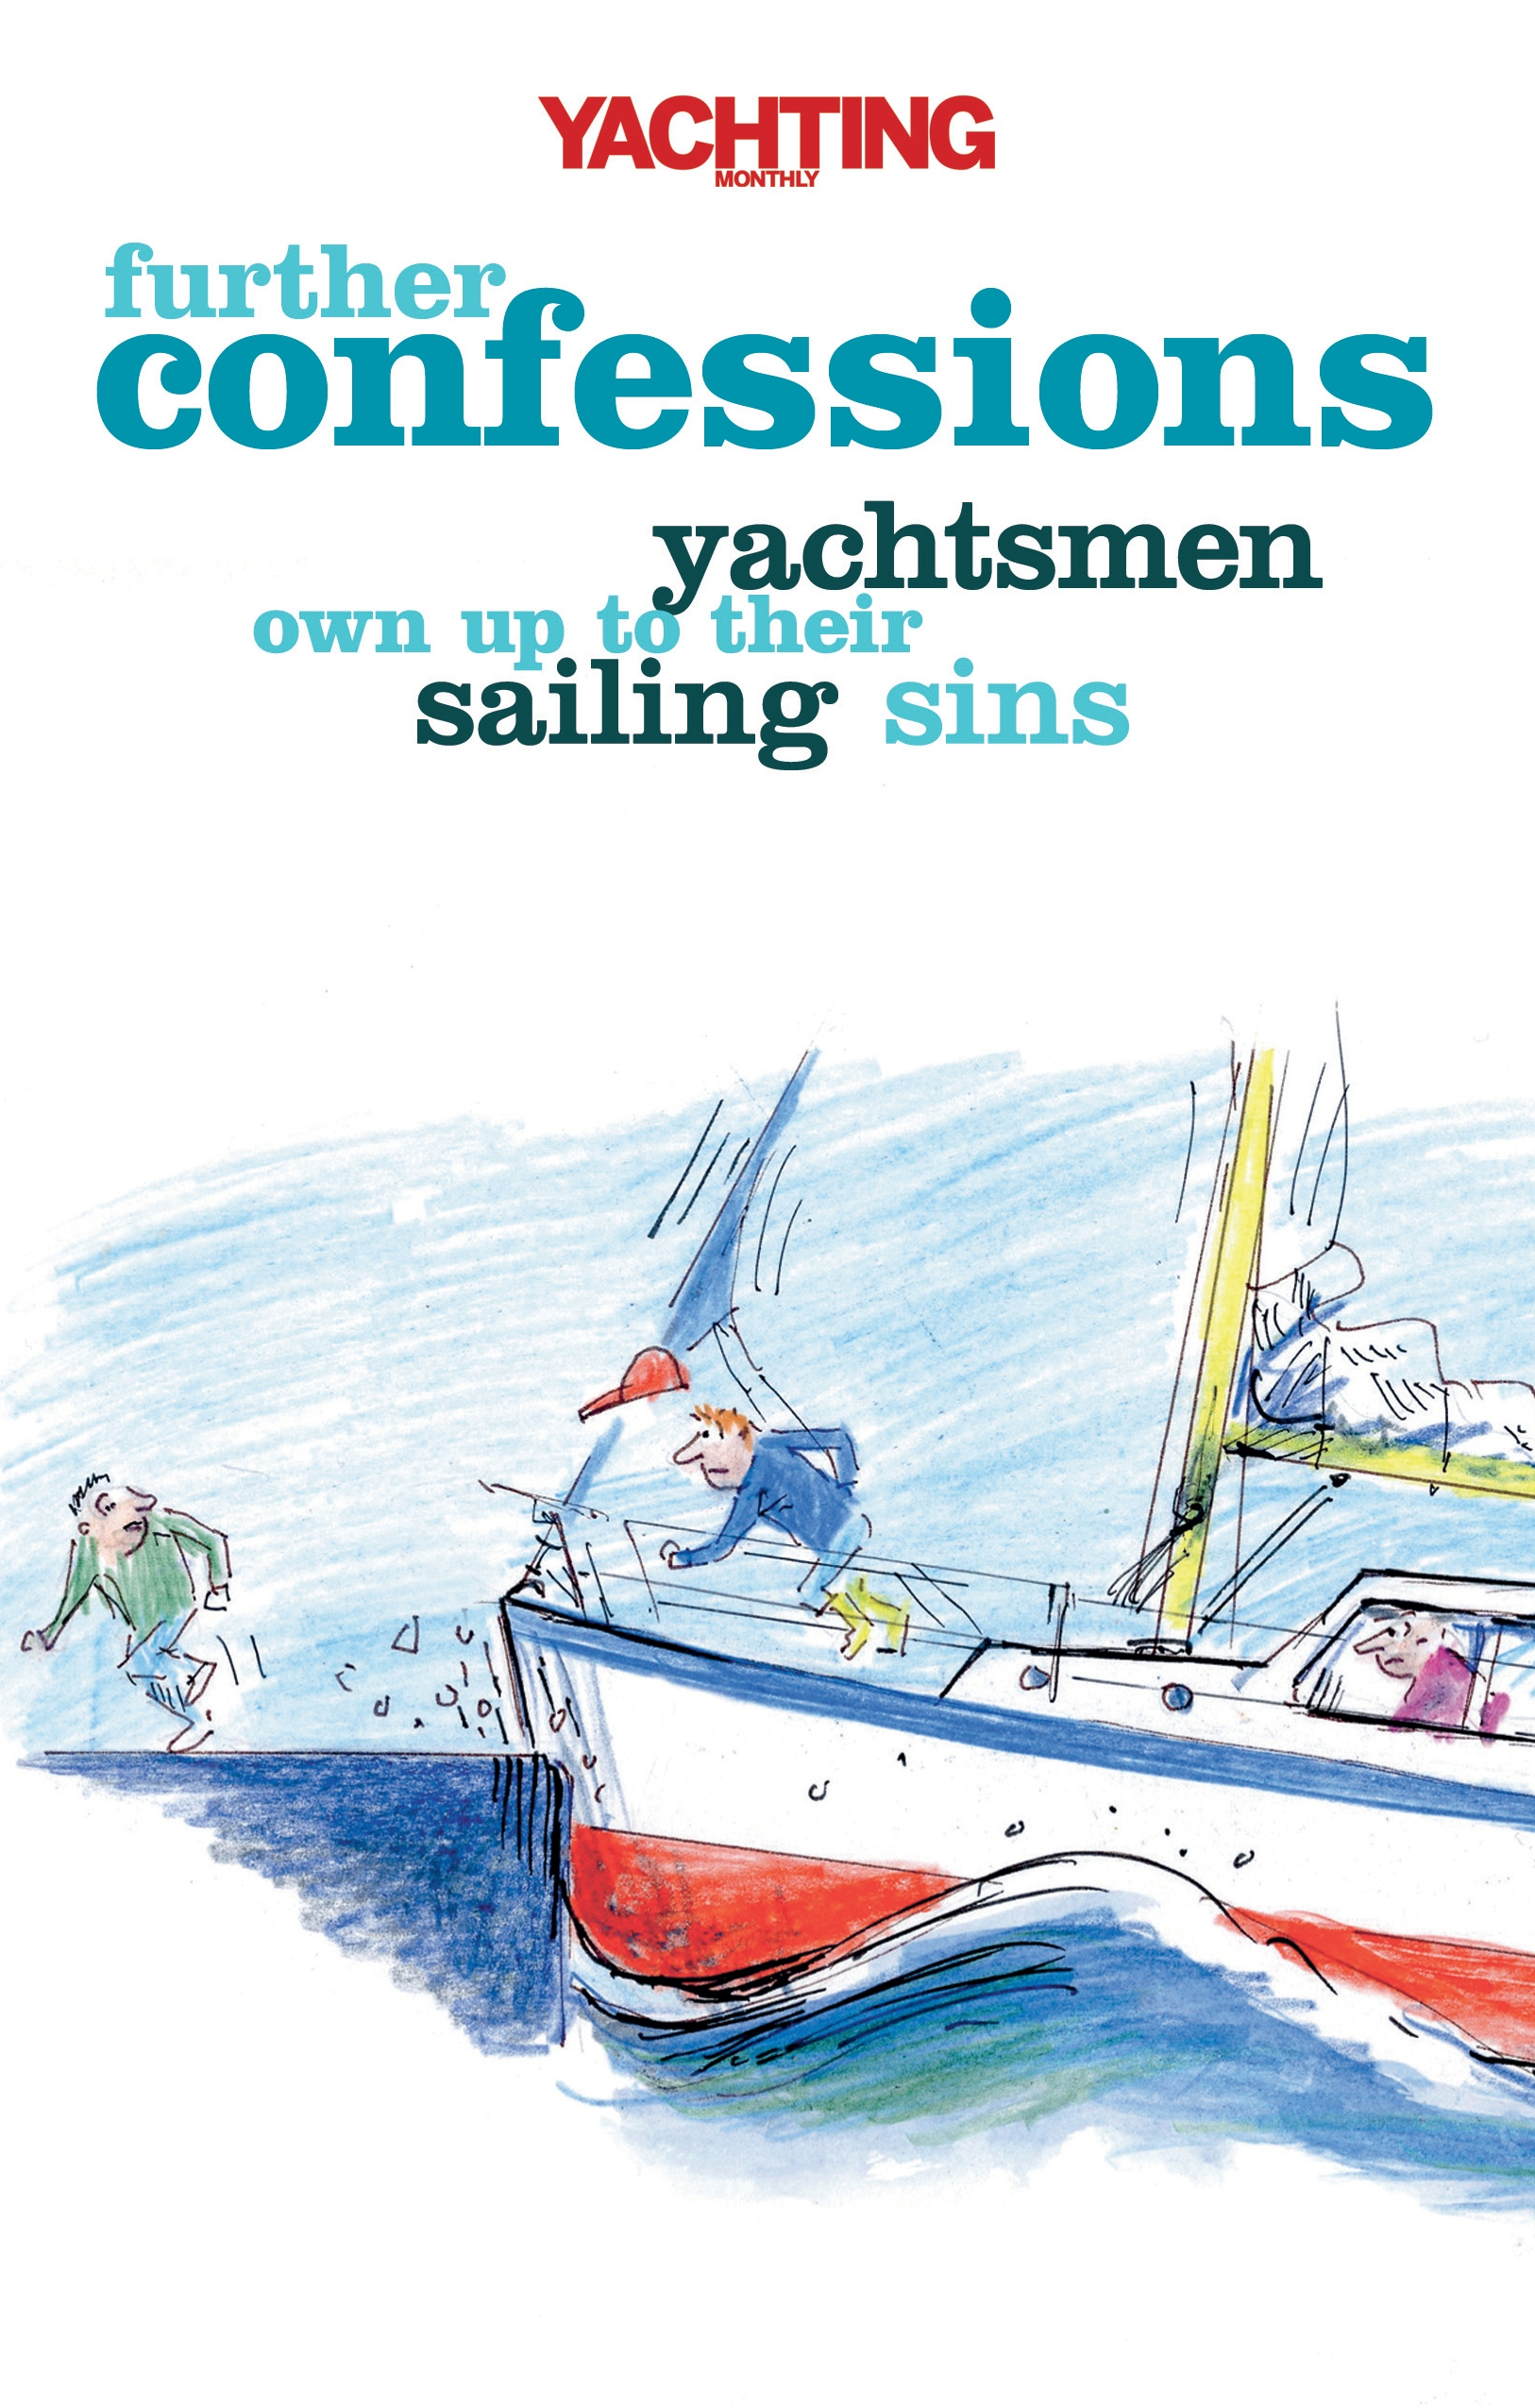 Yachting Monthly's Further Confessions Yachtsmen Own Up to Their Sailing Sins